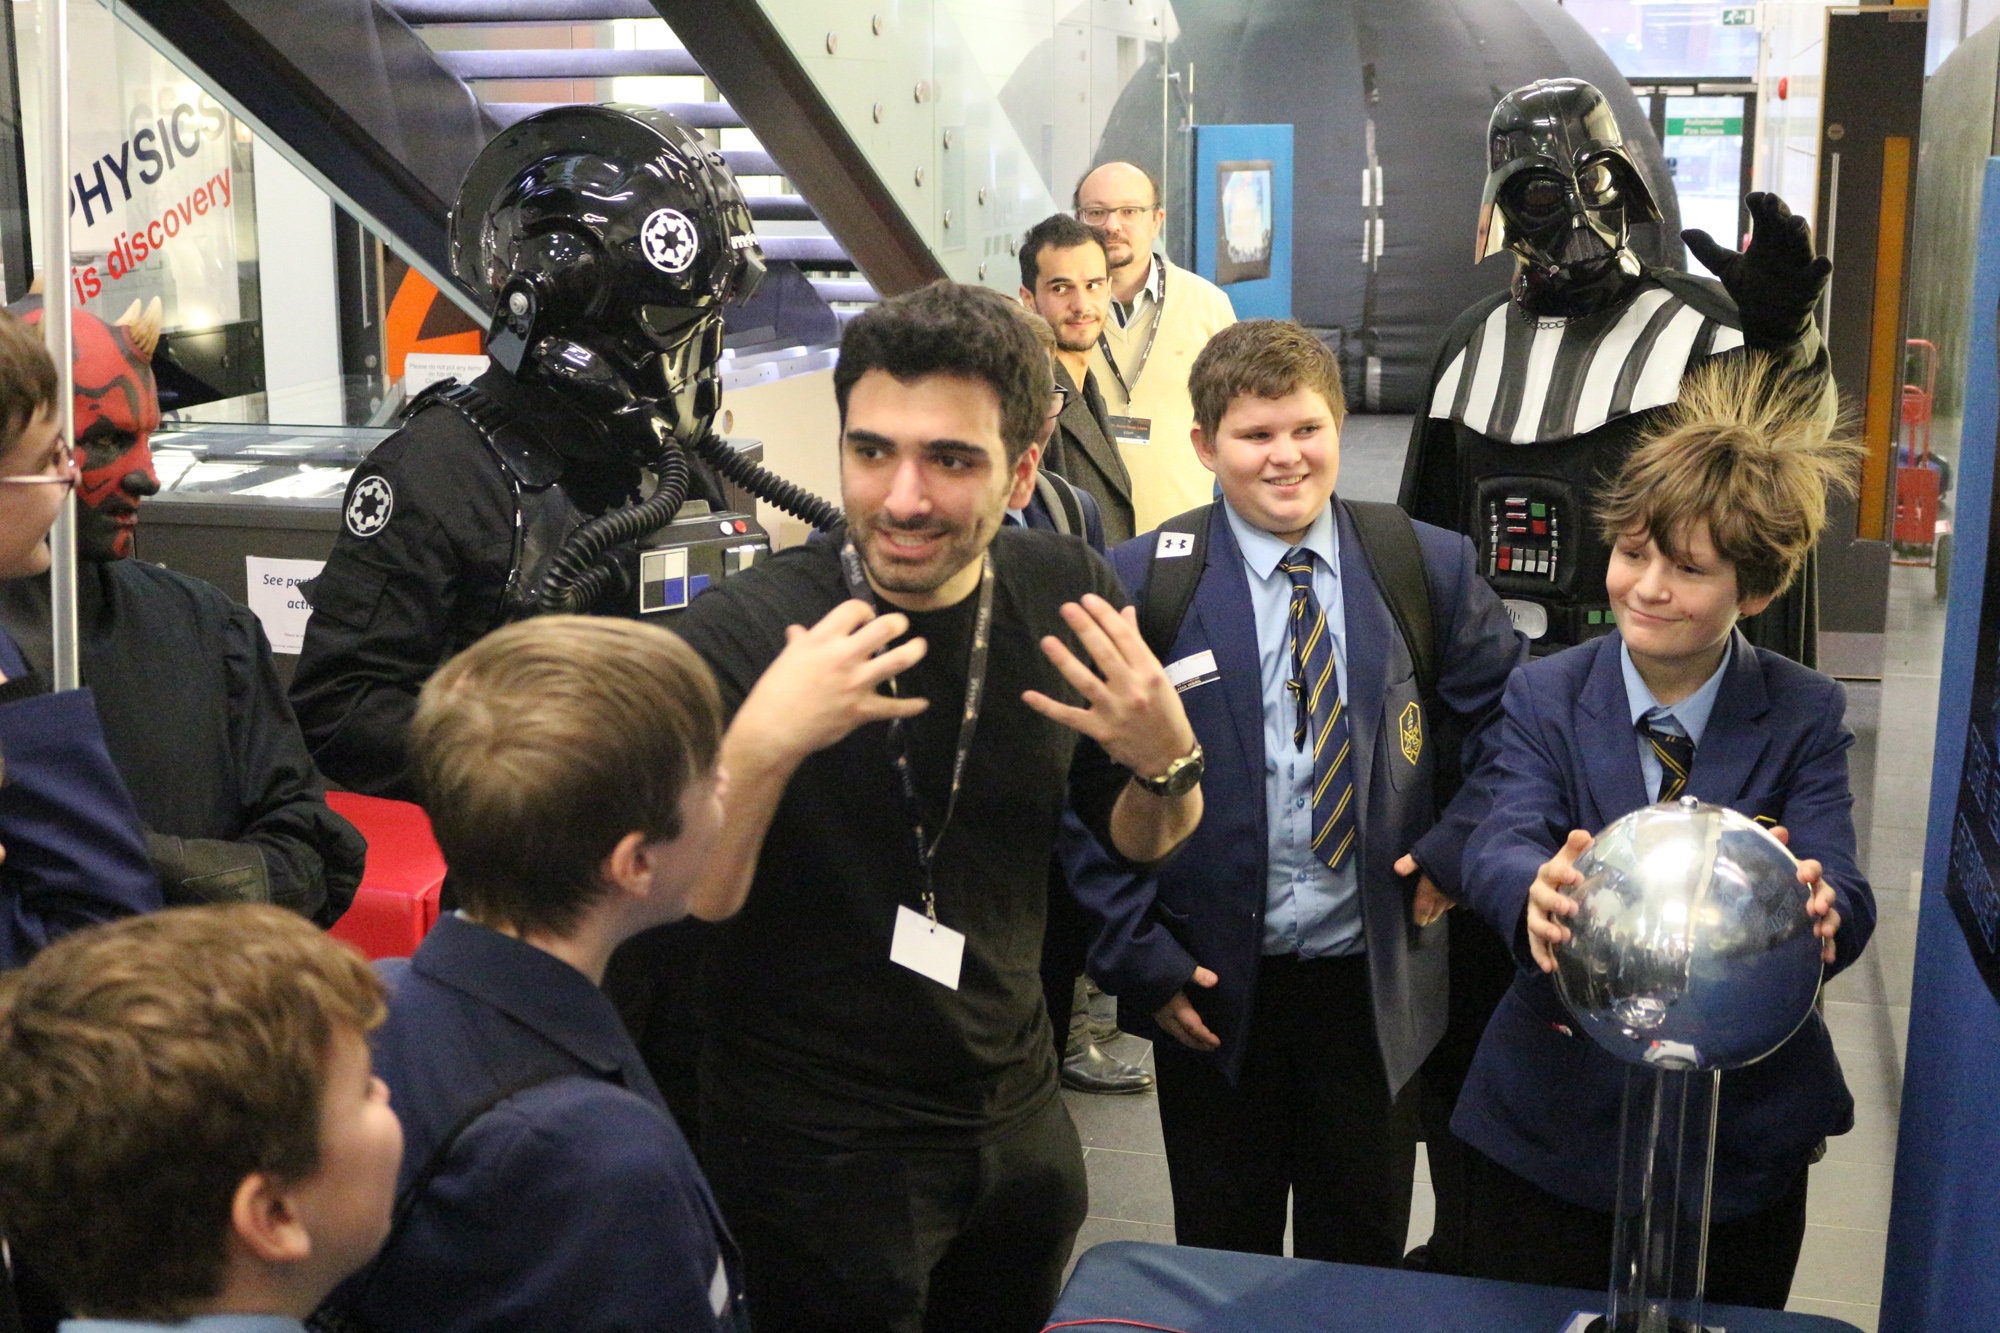 Students from St Gregory's RC learned about Star Wars